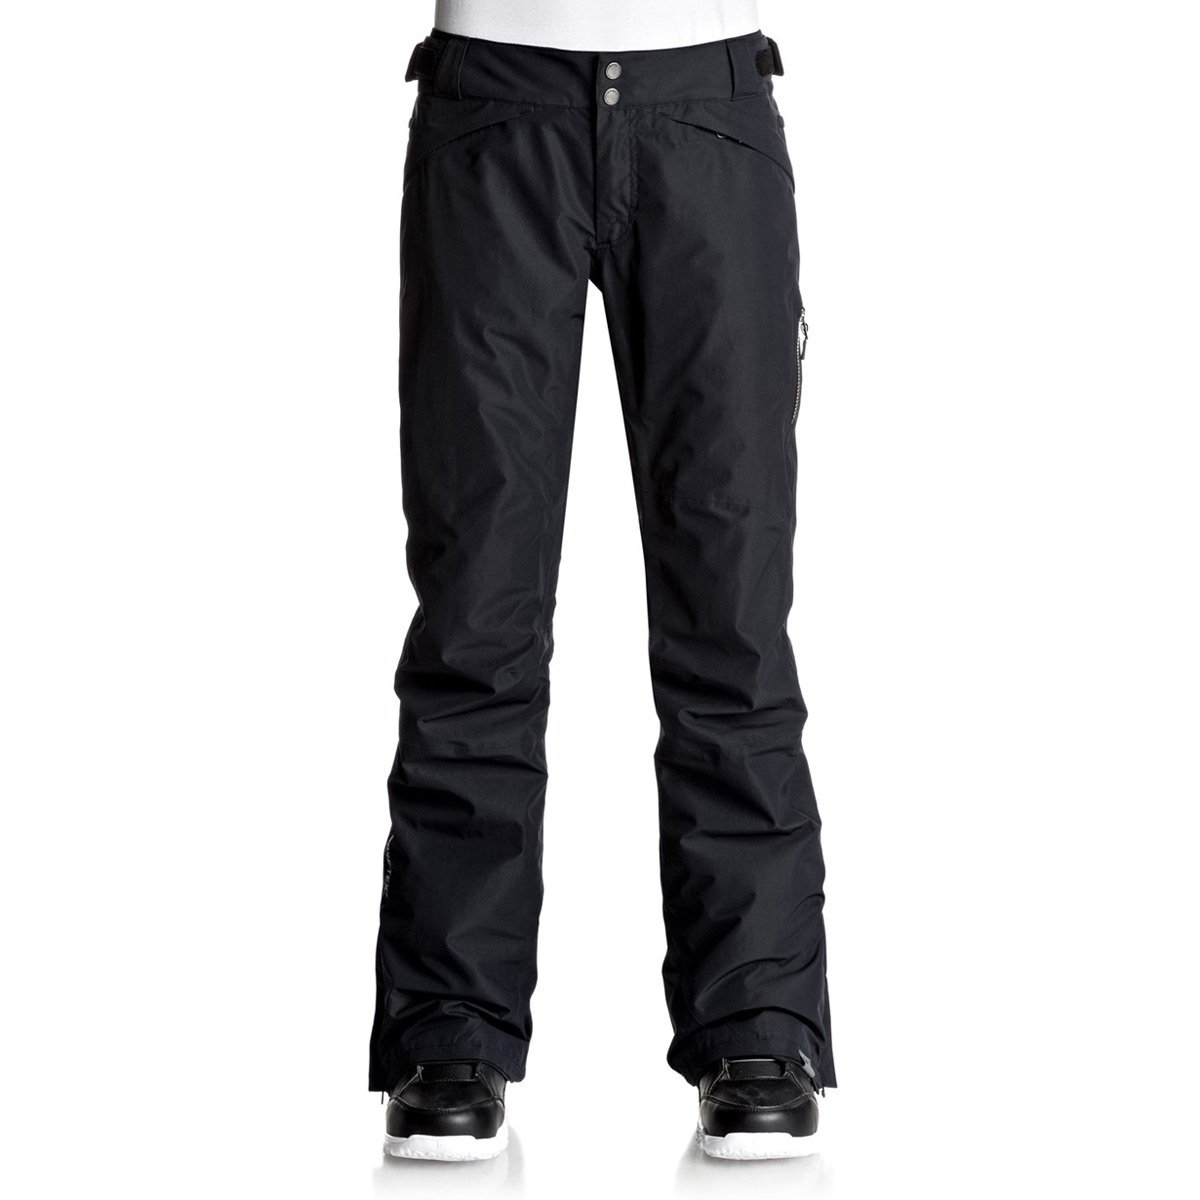 Roxy SNOW Junior's Rushmore 2L Gore-TEX Snow Pant, True Black, M